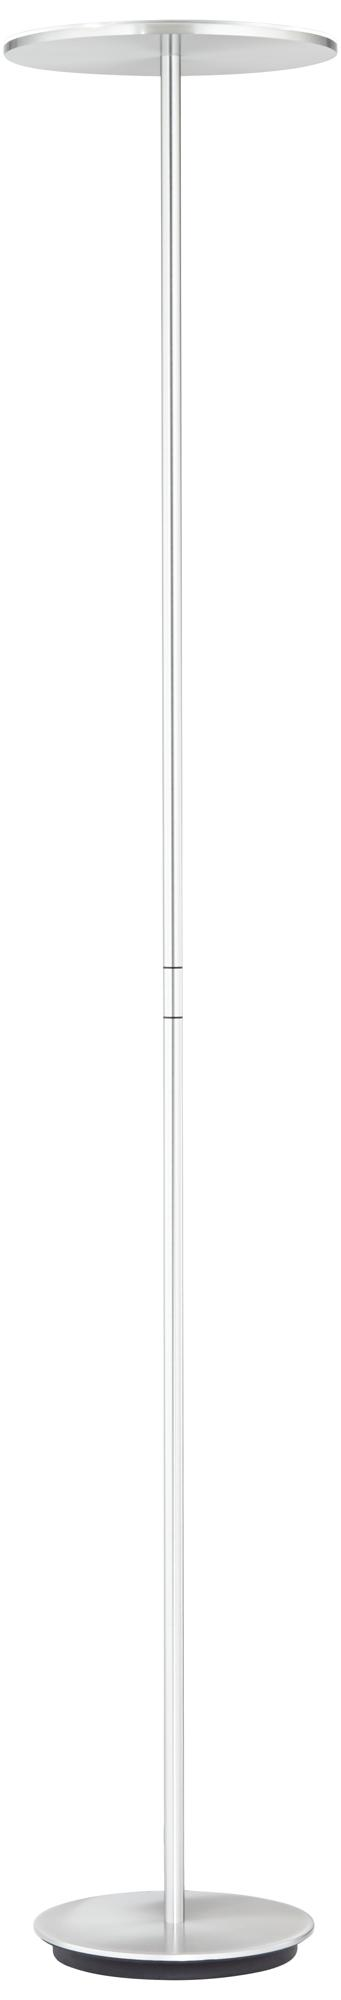 Holtkoetter Plano LED Torchiere Floor Lamp Brushed Aluminum (8D032)